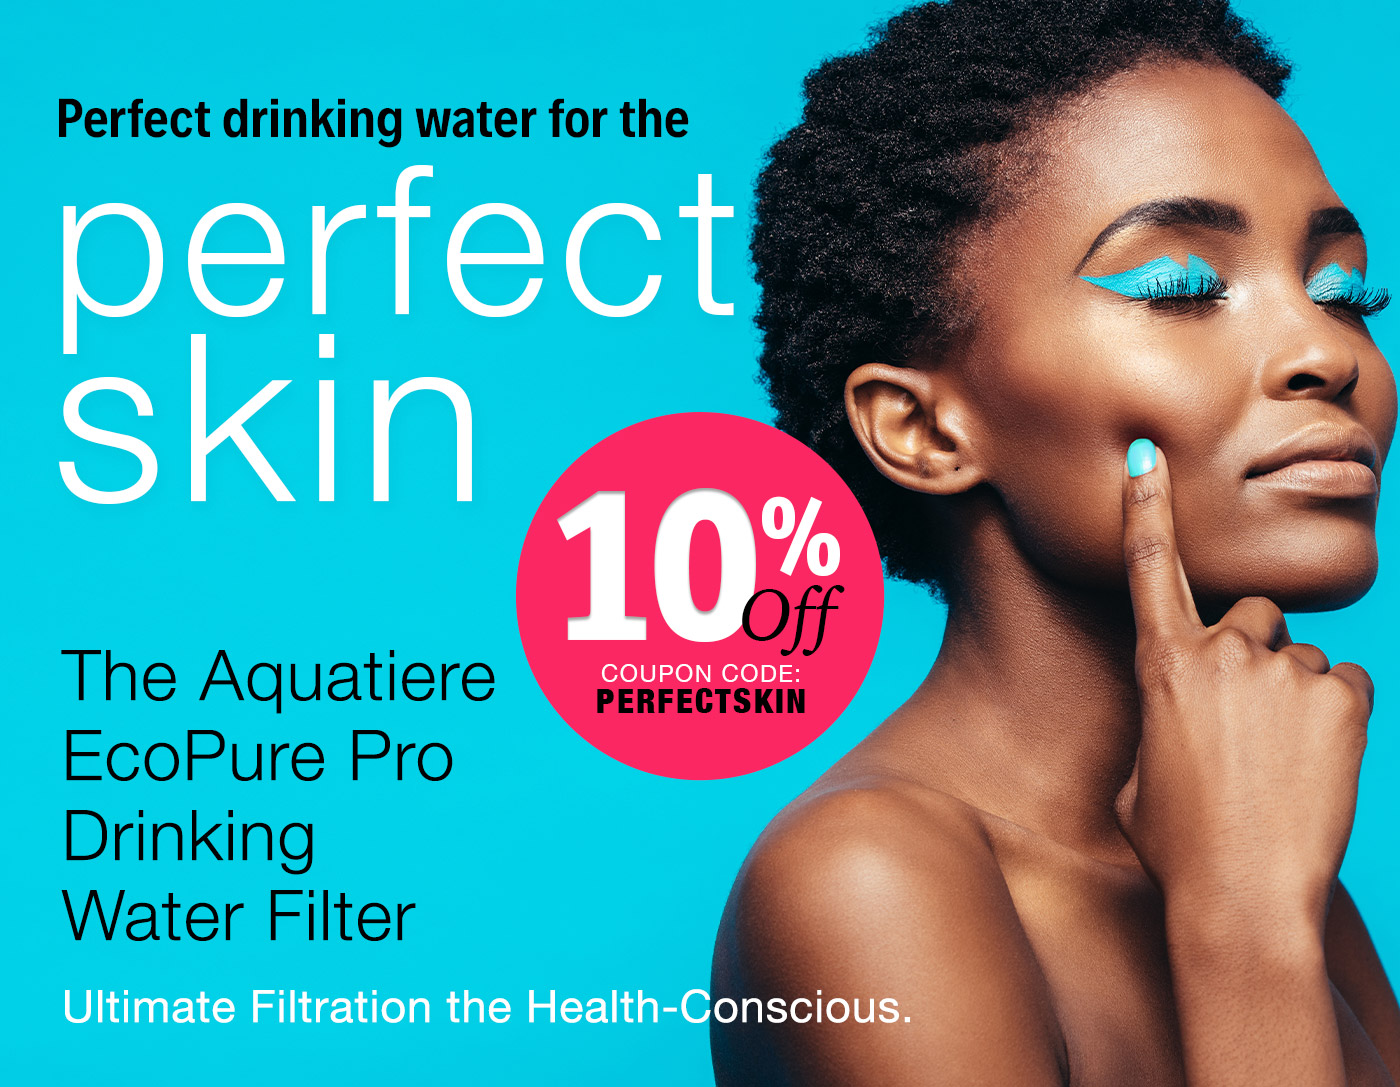 Aquatiere-Perfect-Skin-Promotion-Facebook